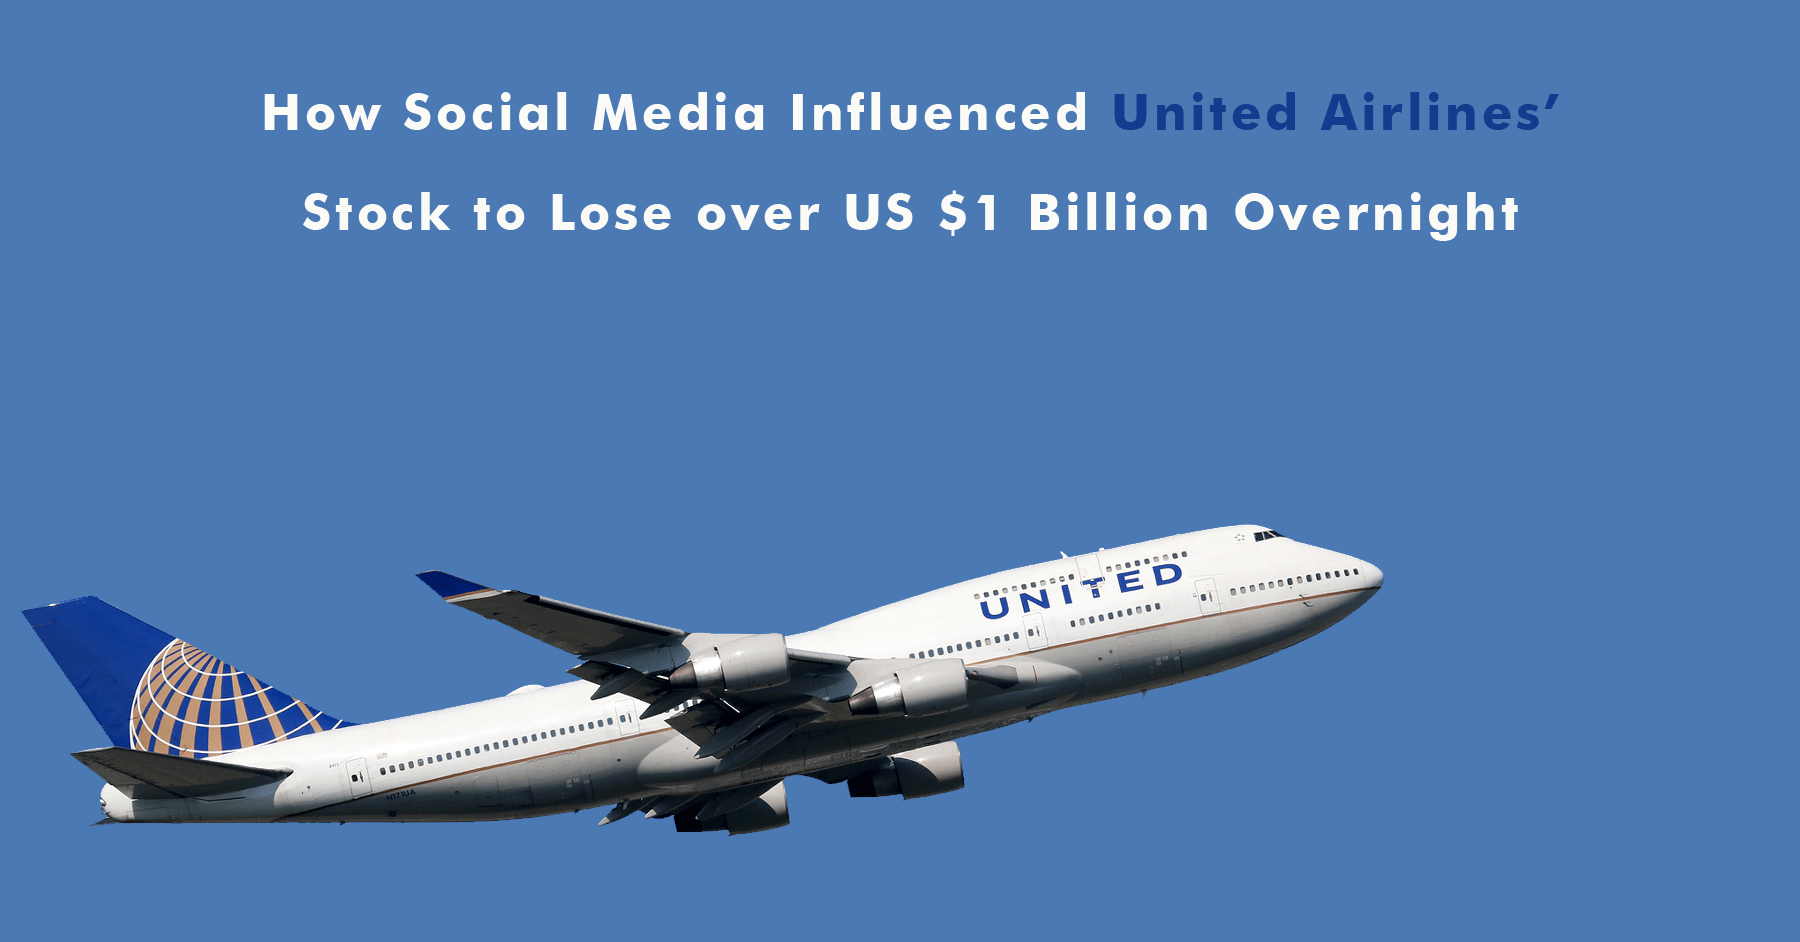 How Social Media Marketing Influenced United Airlines' Stock to Loose over US $1 Billion Overnight